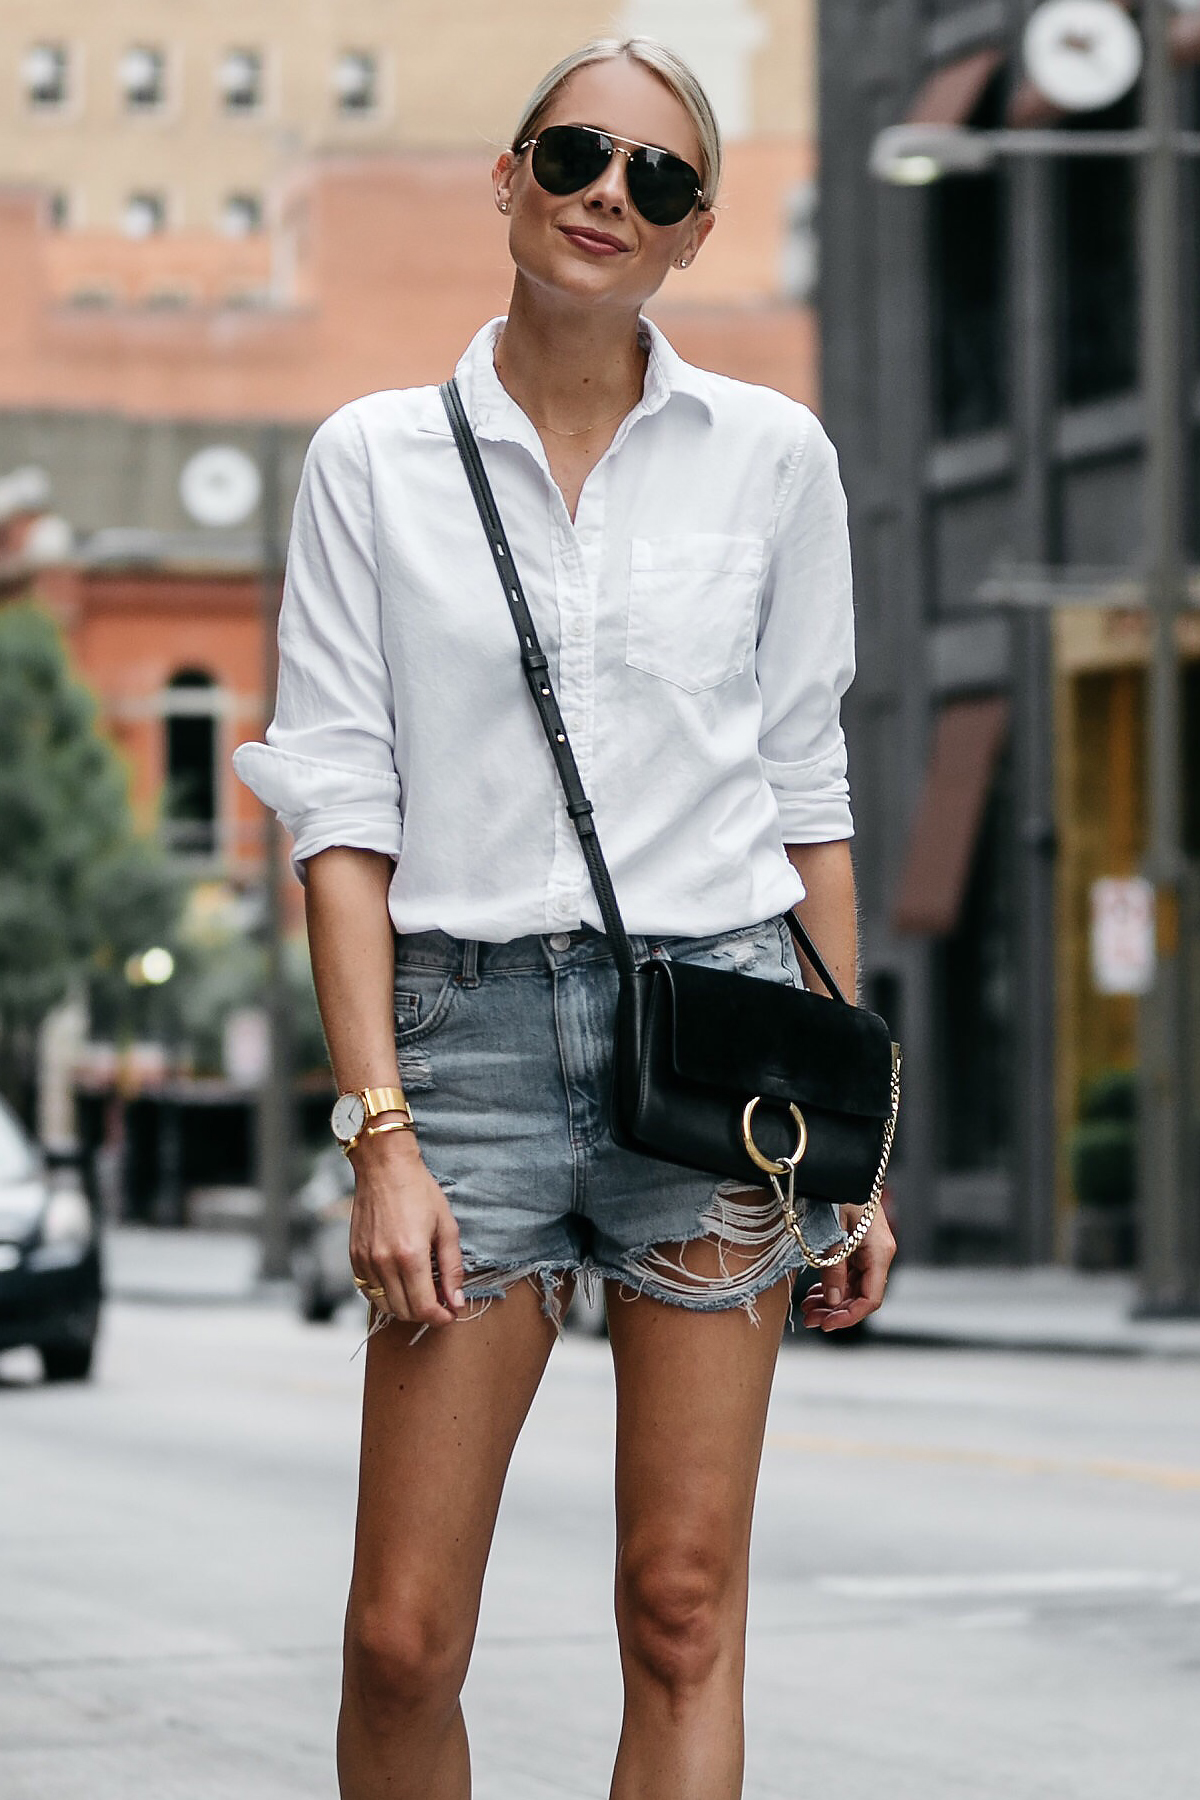 Blonde Woman Wearing Banana Republic White Button Down Shirt Topshop Ripped Denim Cutoff Shorts Outfit Chloe Faye Handbag Street Style Dallas Blogger Fashion Blogger Fashion Jackson